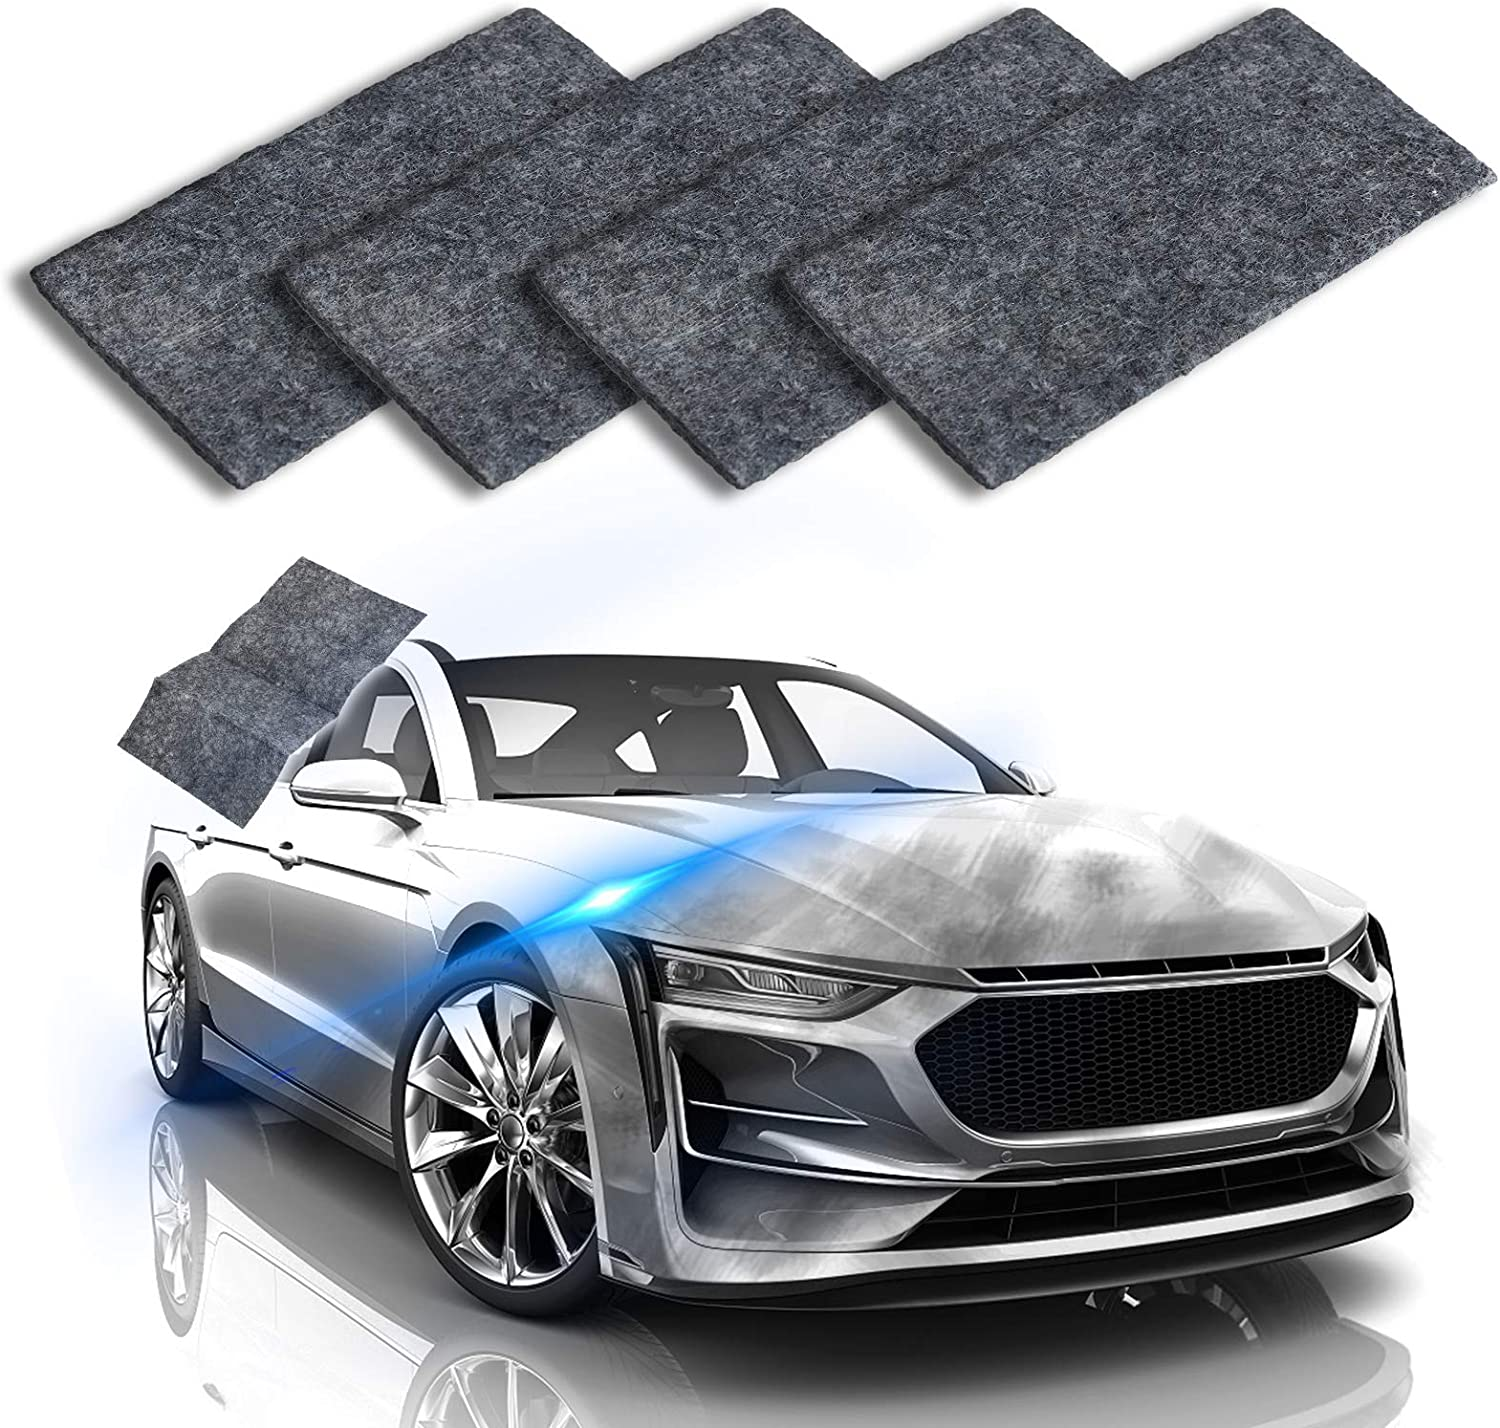 Black Polishing Surface Paint LIUMY 4Pcs Car Scratch Remover Cloth Strong Decontamination Nano Cloth For Cars Paint Repair Cloth Car Scratch Repair Kit for Repairing Minor Scratches